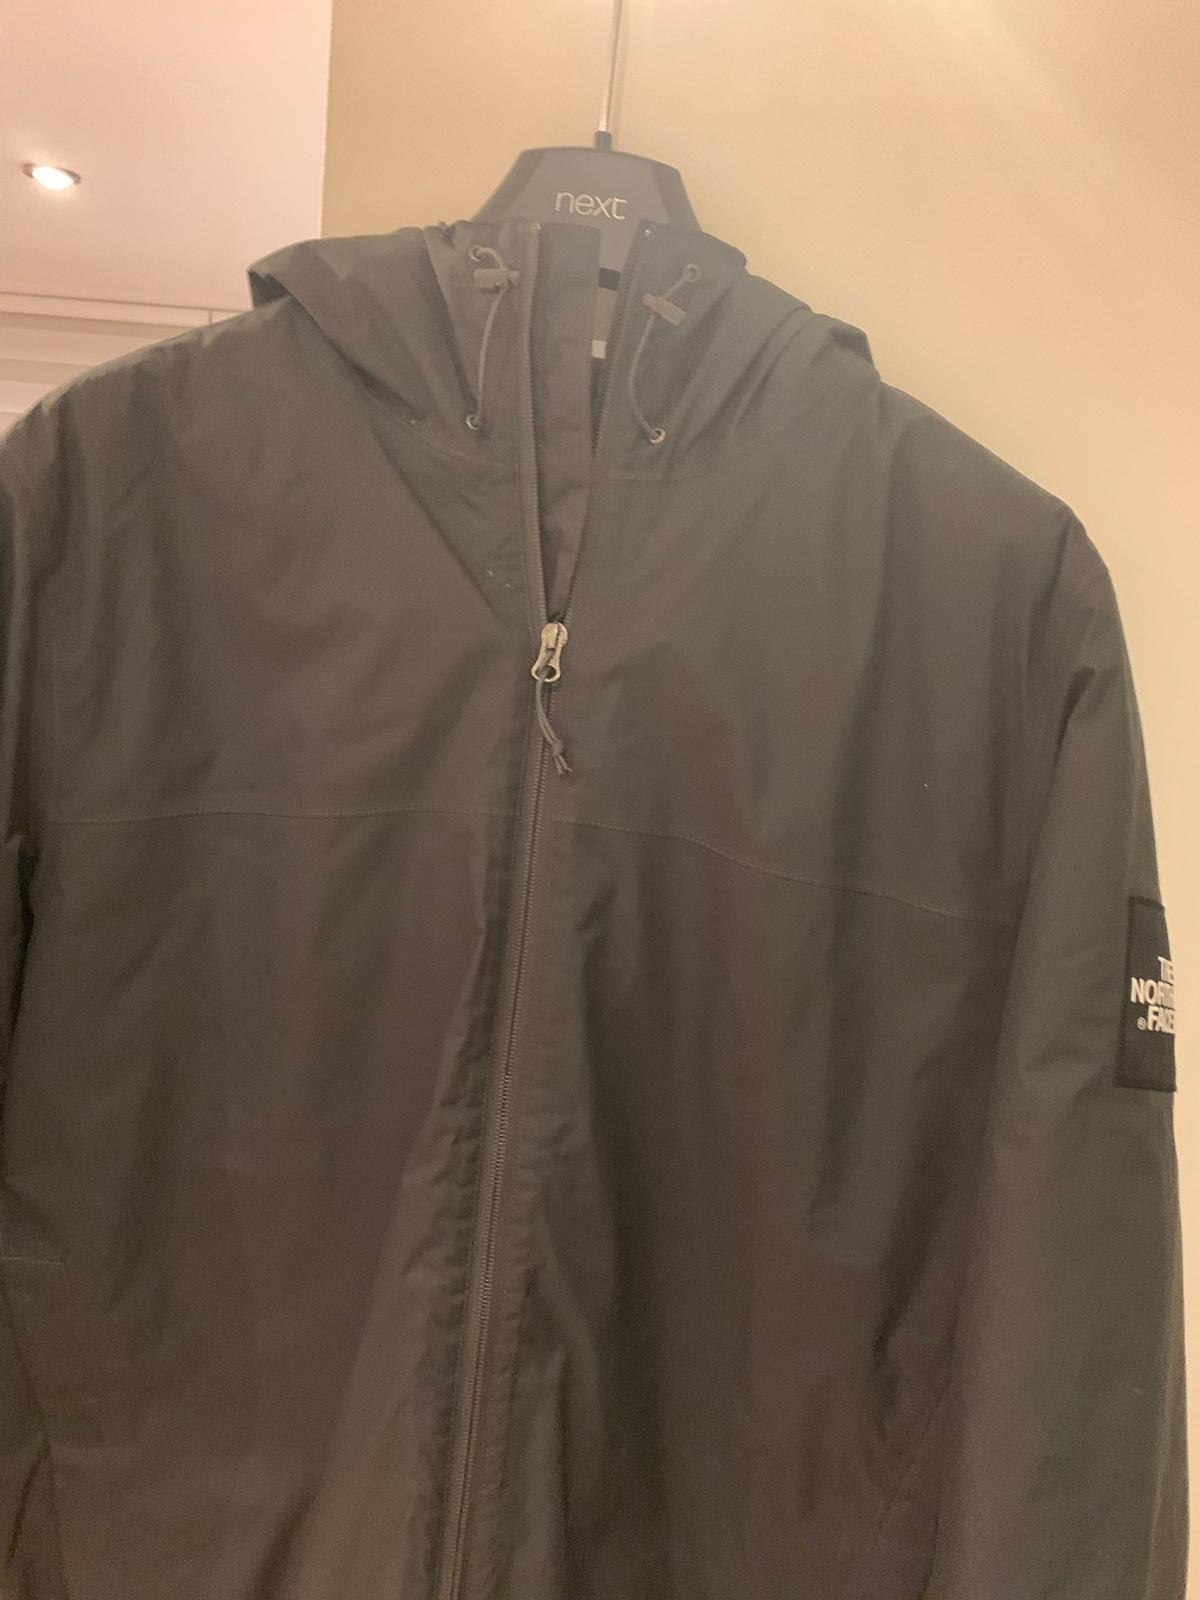 b95eb9a44 The North face Men's Jacket size xl in SE5 London für £ 110,00 ...